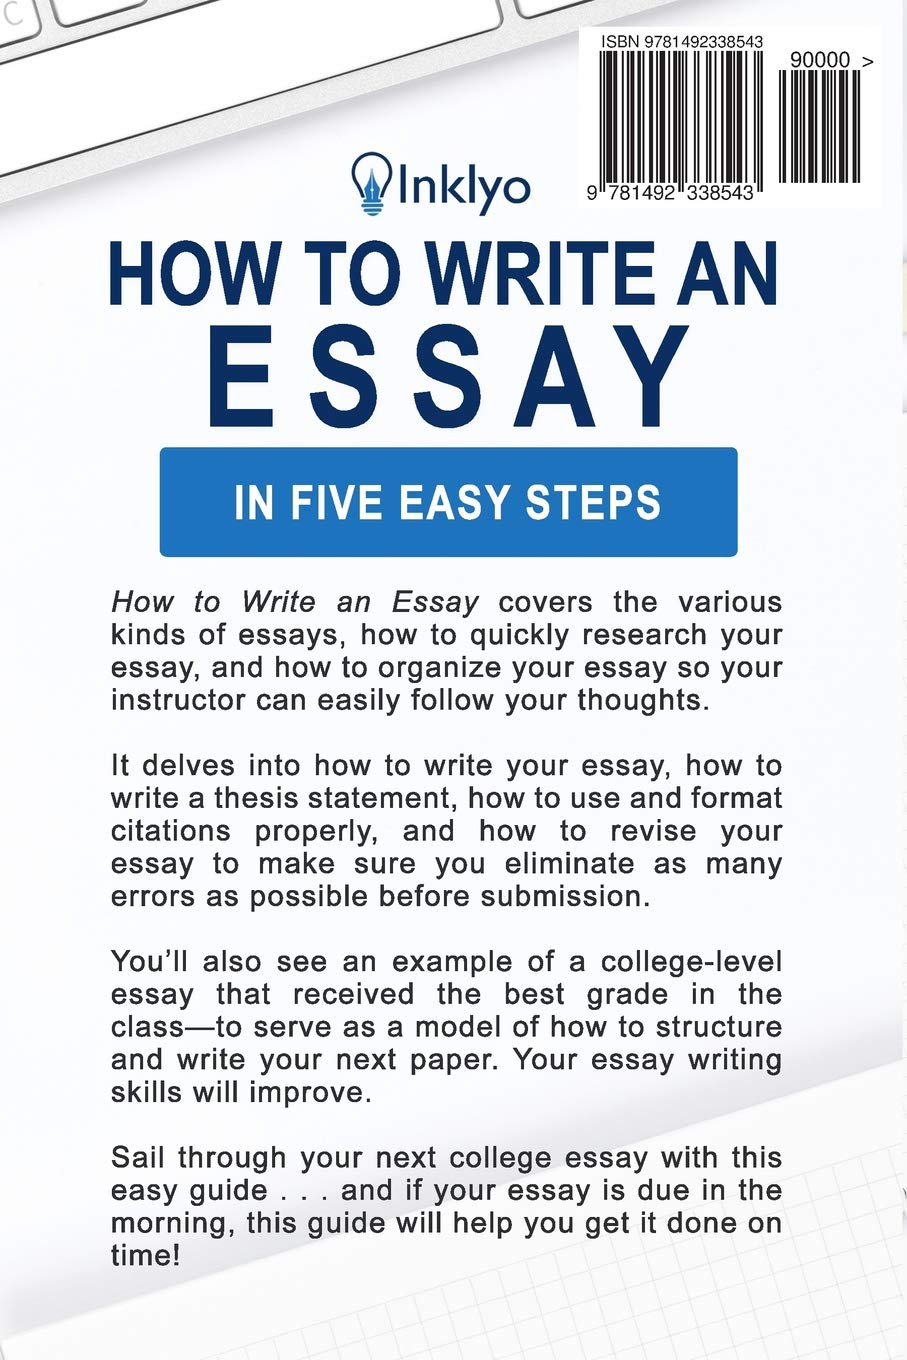 Thesis Statement Narrative Essay  High School Dropout Essay also Public Health Essays How To Write An Essay In Five Easy Steps Amazonin  Essay On English Teacher